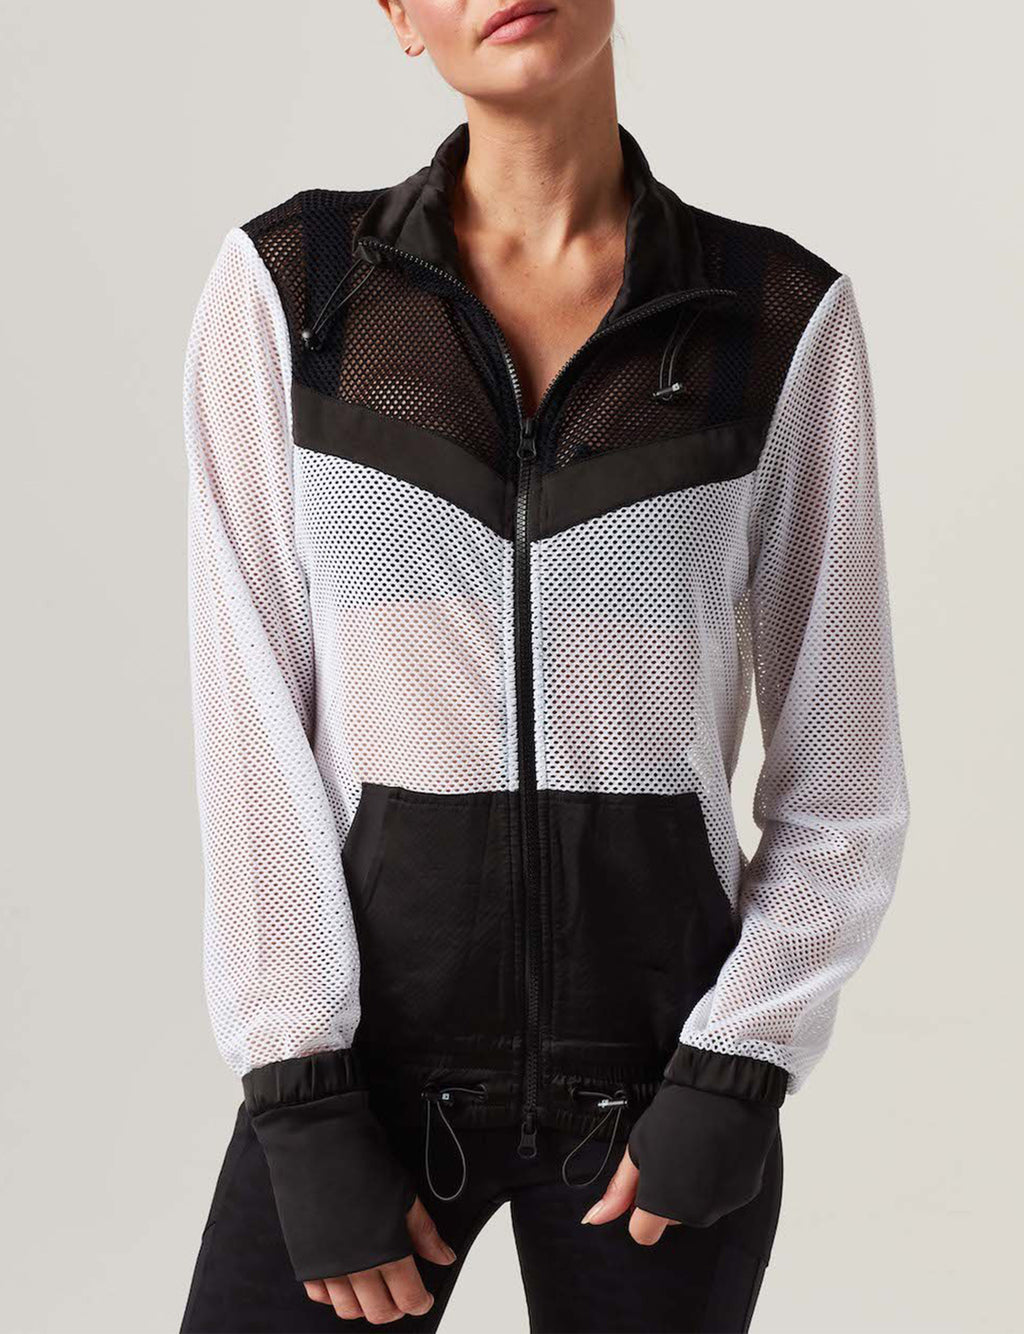 Color Blocked Alfresco Jacket in Black/White